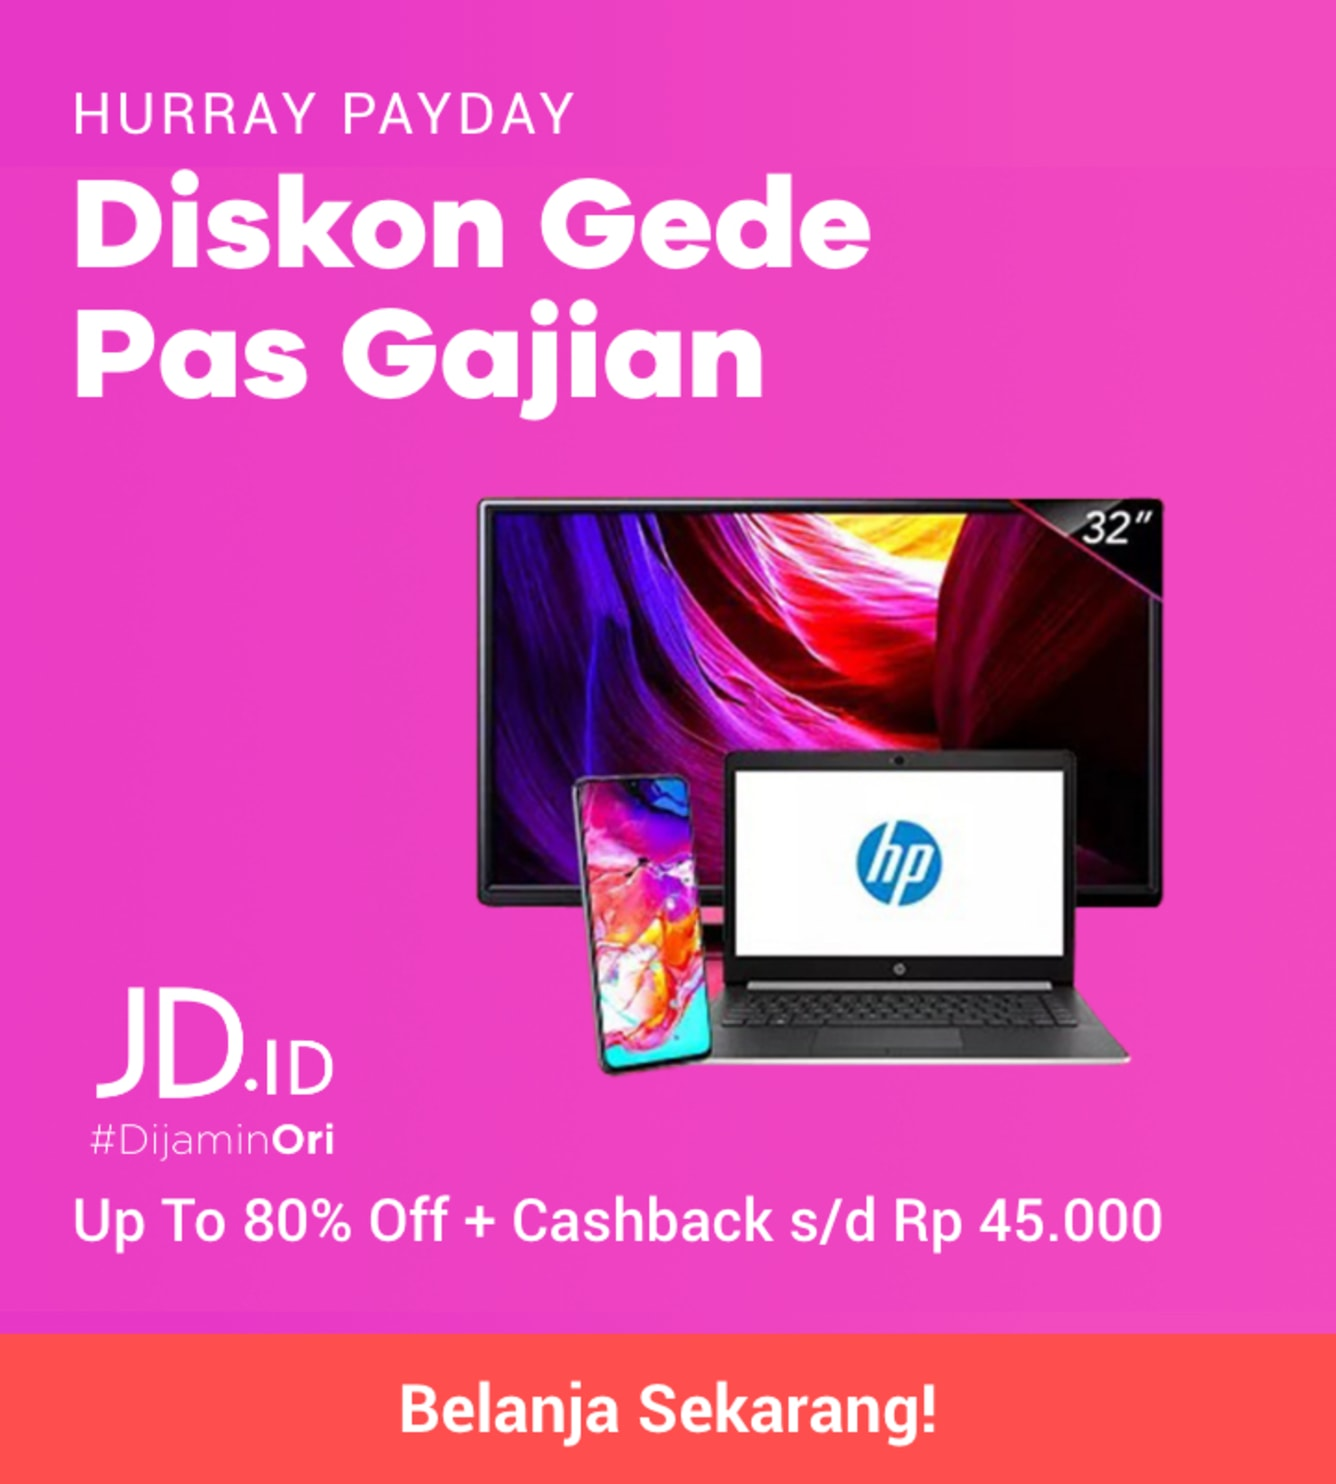 Week 17 - Promo JD.id